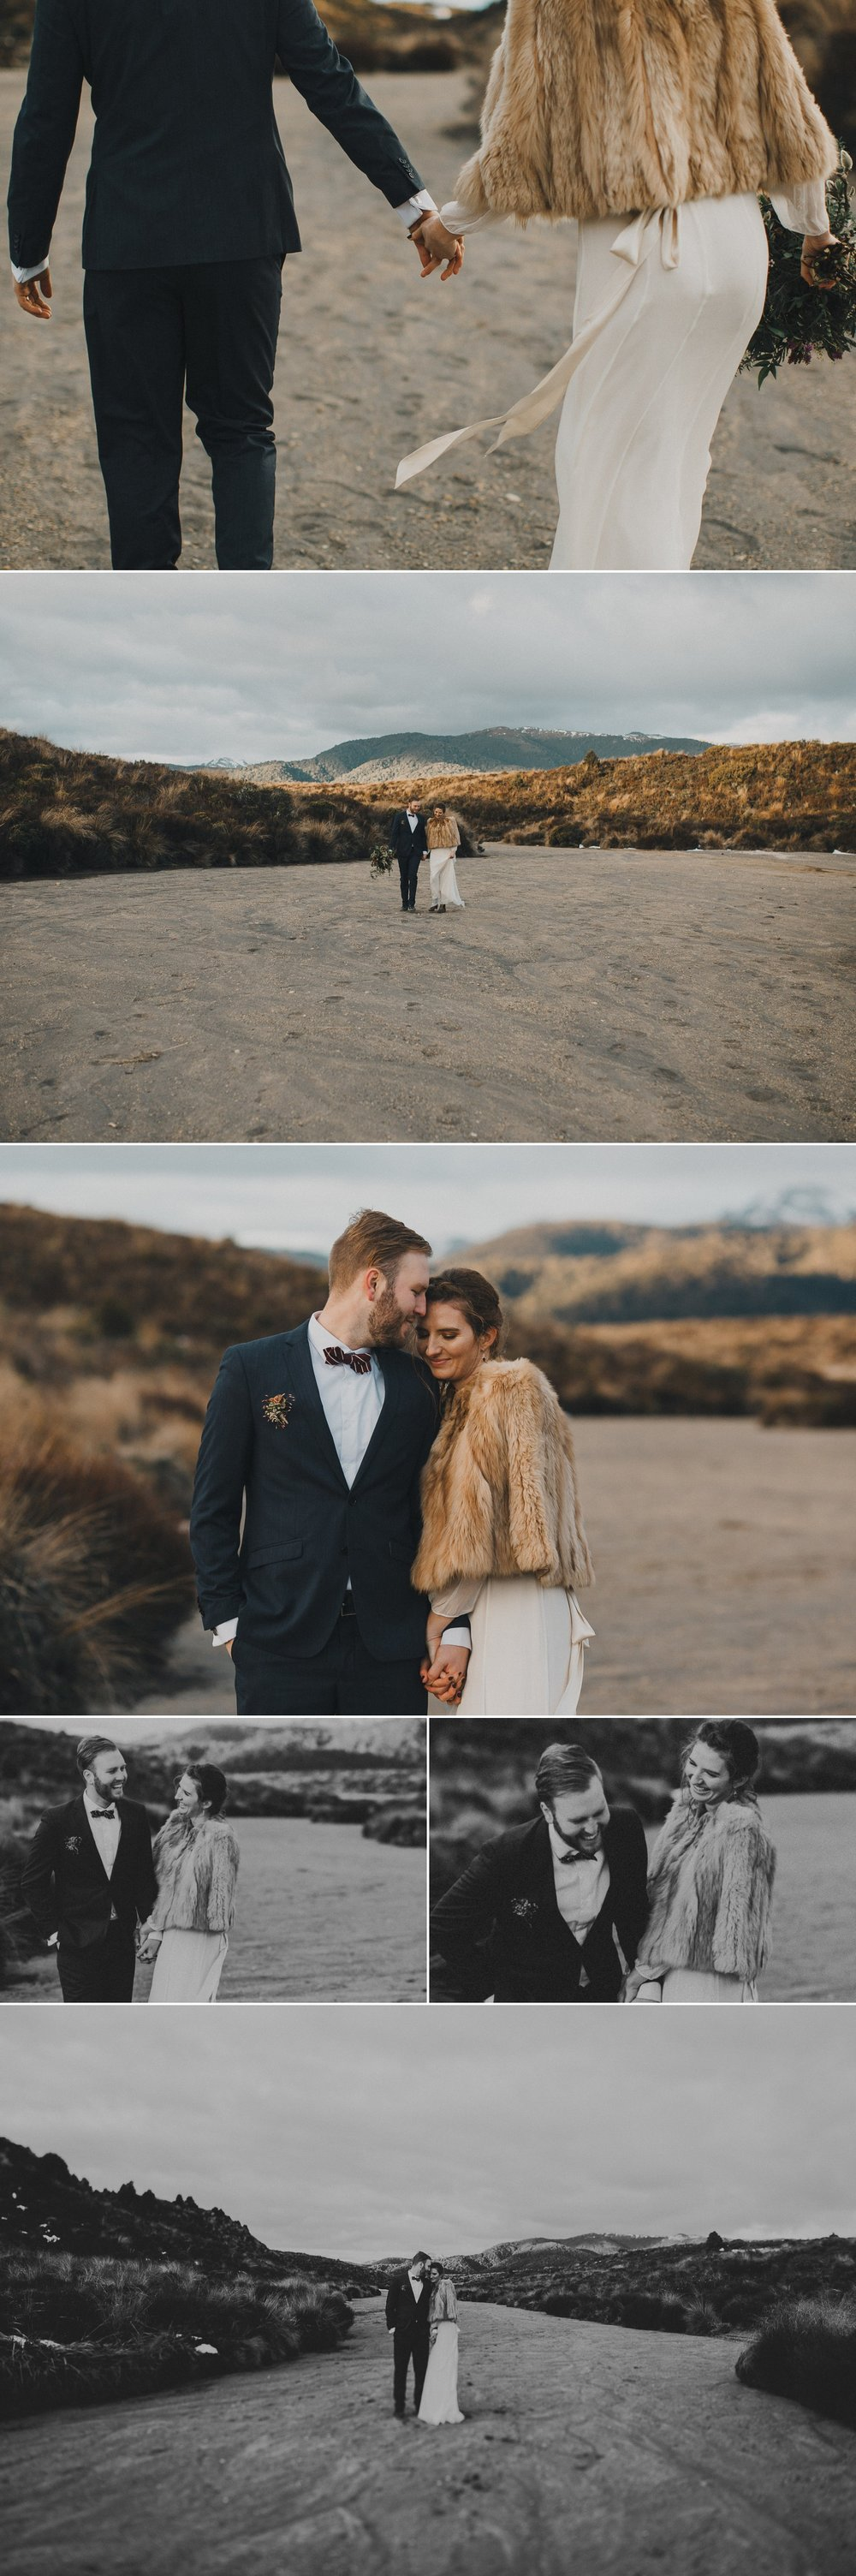 Pre-wedding photos in New Zealand